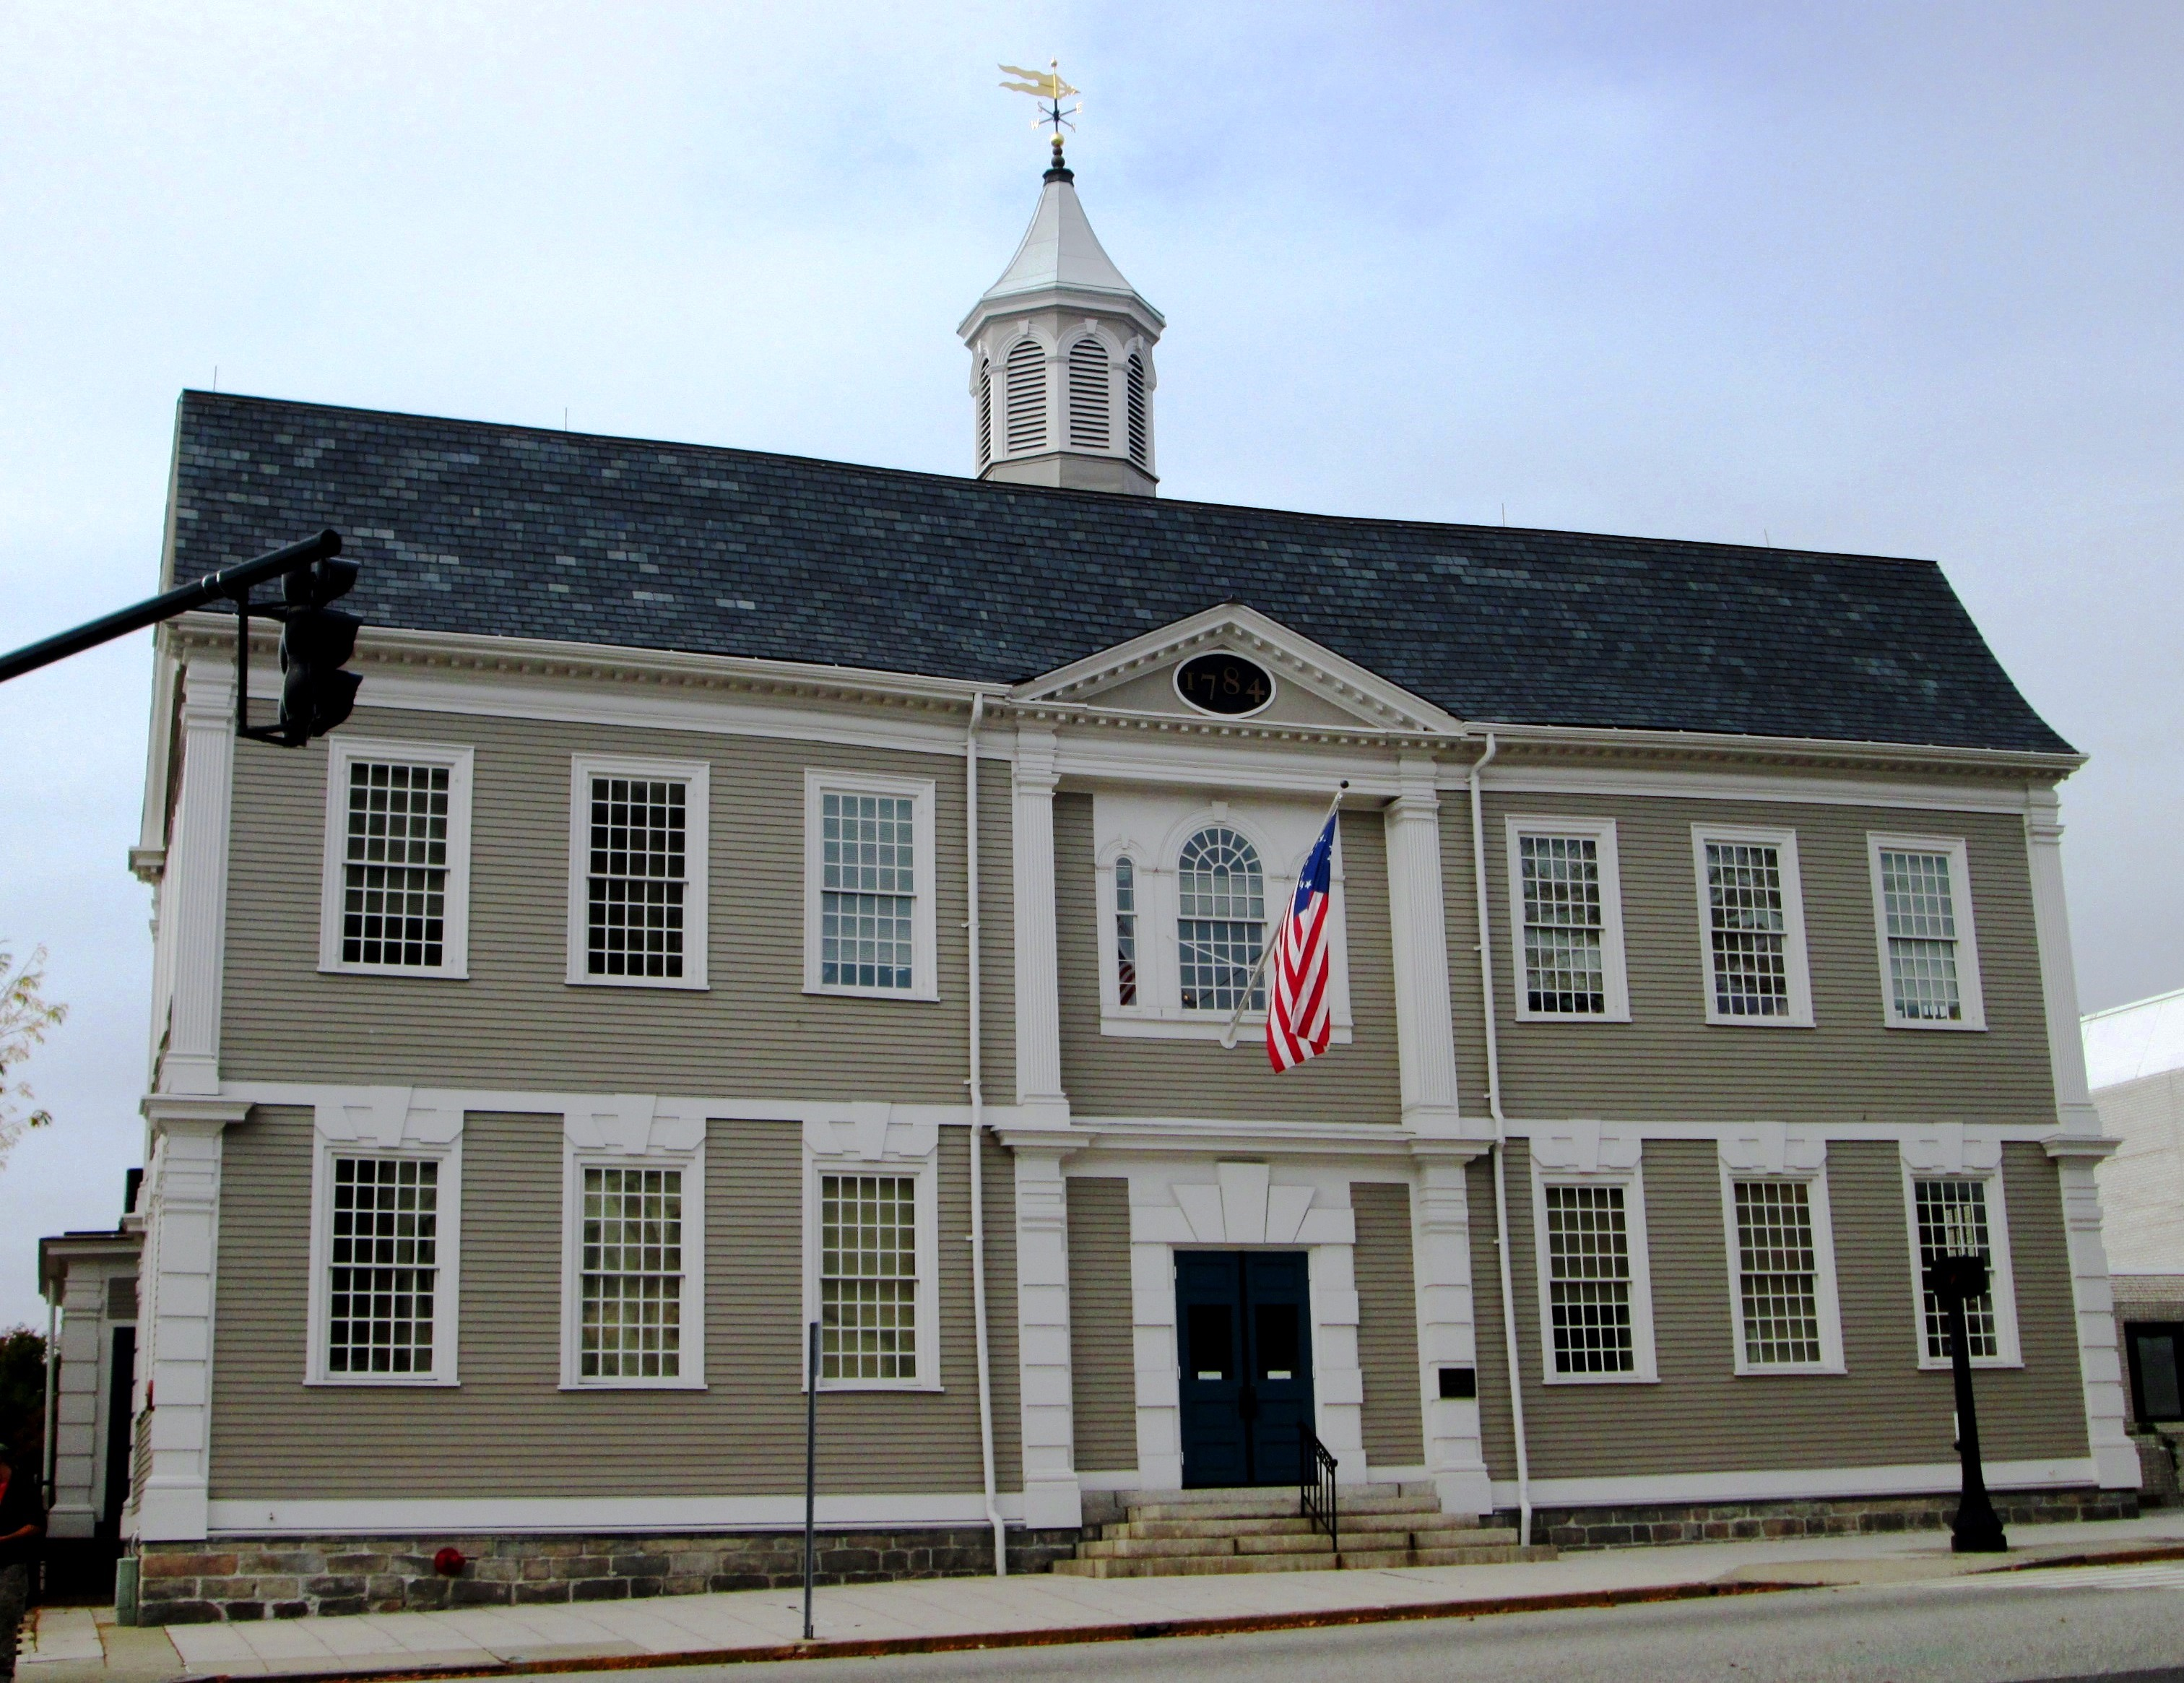 New London County, Connecticut - Wikipedia on map of colchester ct, map of vernon rockville ct, map of southington ct, map of union ct, map of carolina pr, map of thompsonville ct, map of long island sound ct, map of connecticut, map of state of ct, map of windsor ct, map of north granby ct, map of mohegan sun ct, map of north haven ct, map of hamburg ct, map of wauregan ct, map of boston ct, map of stonington borough ct, map of webster ct, map of gaylordsville ct, map of woodbridge ct,